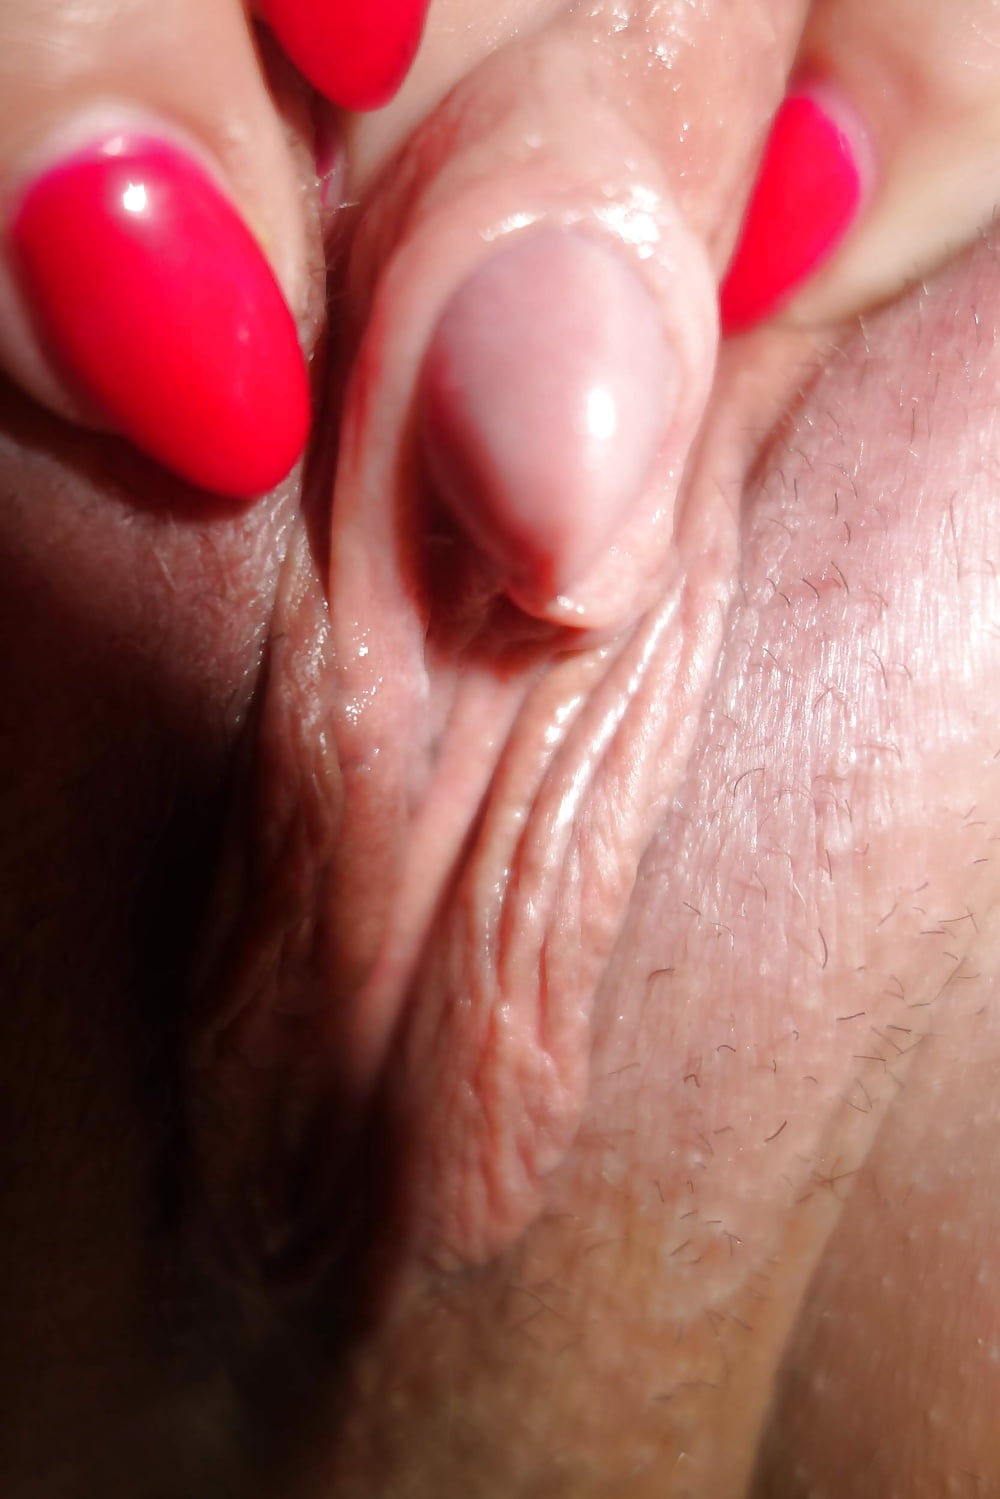 tight-and-moist-clit-selfie-shaved-small-round